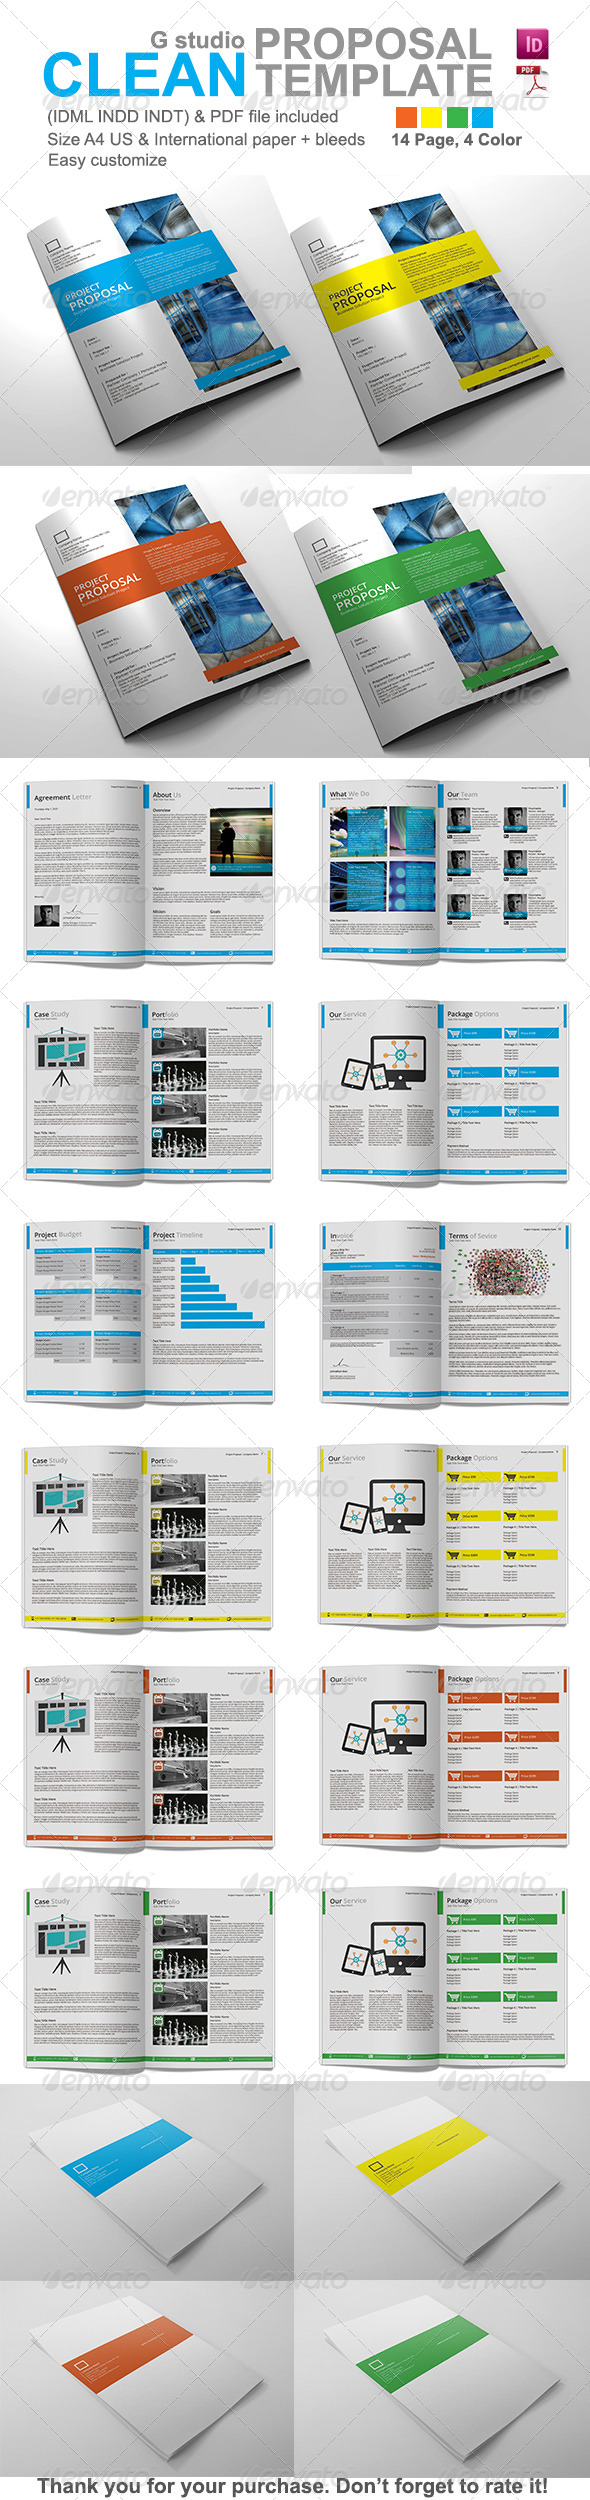 GraphicRiver Gstudio Clean Proposal Template 4485656